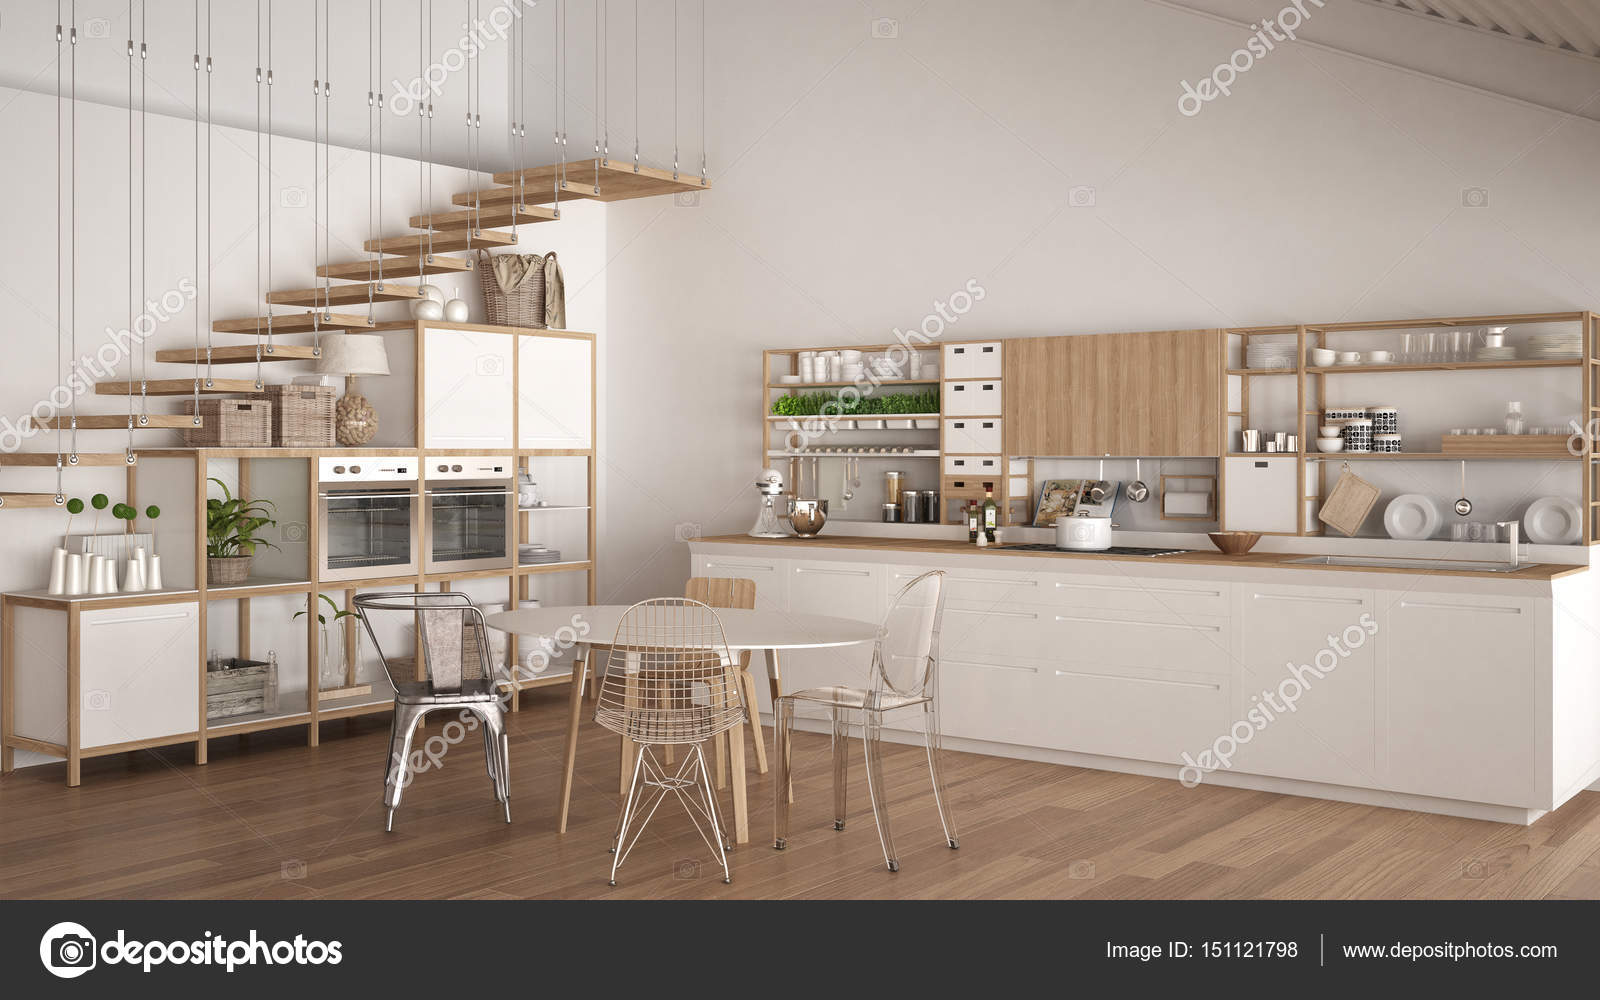 Best cucina con soppalco images ideas design 2017 for Cocinas minimalistas